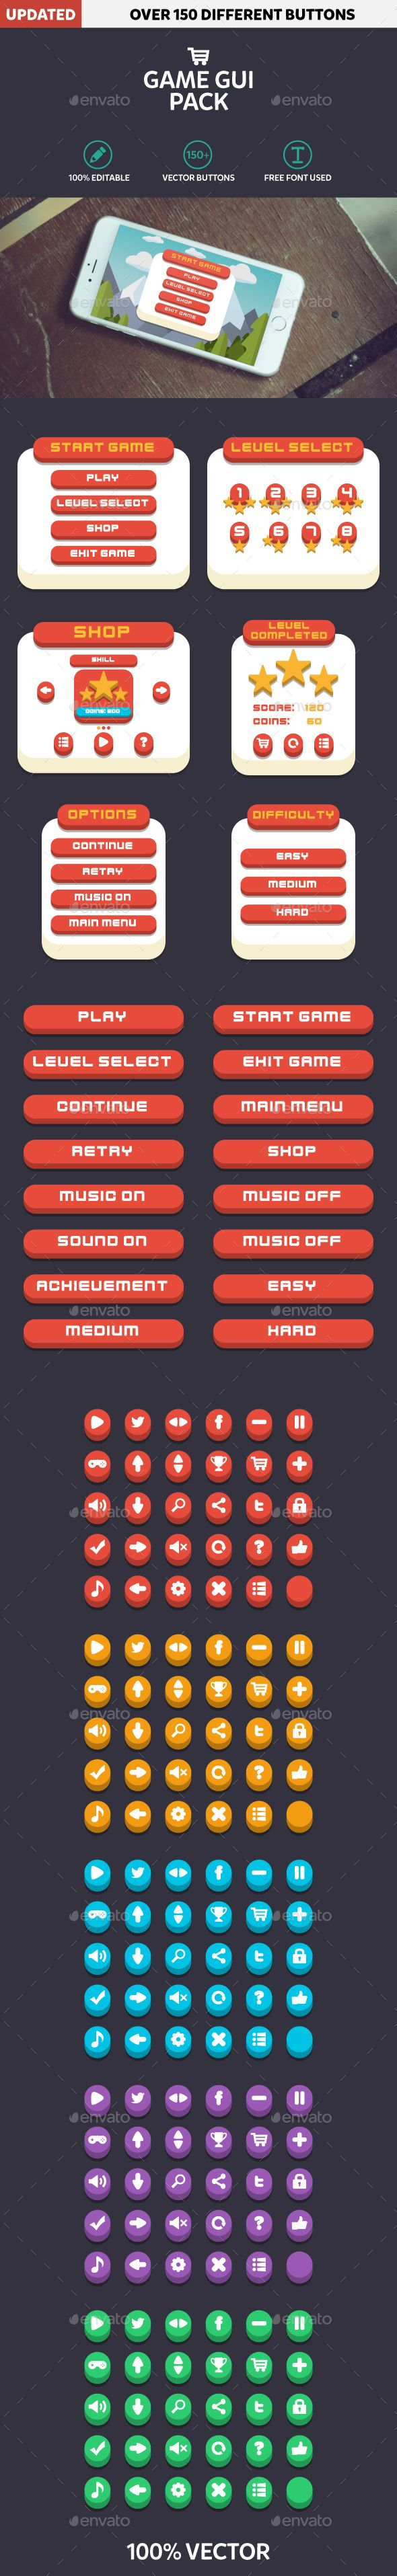 Mobile Game GUI Pack Flat Modern Template Transparent PNG, Vector EPS, AI Illustrator. Download here: https://graphicriver.net/item/mobile-game-gui-pack-flat-modern/17091409?ref=ksioks